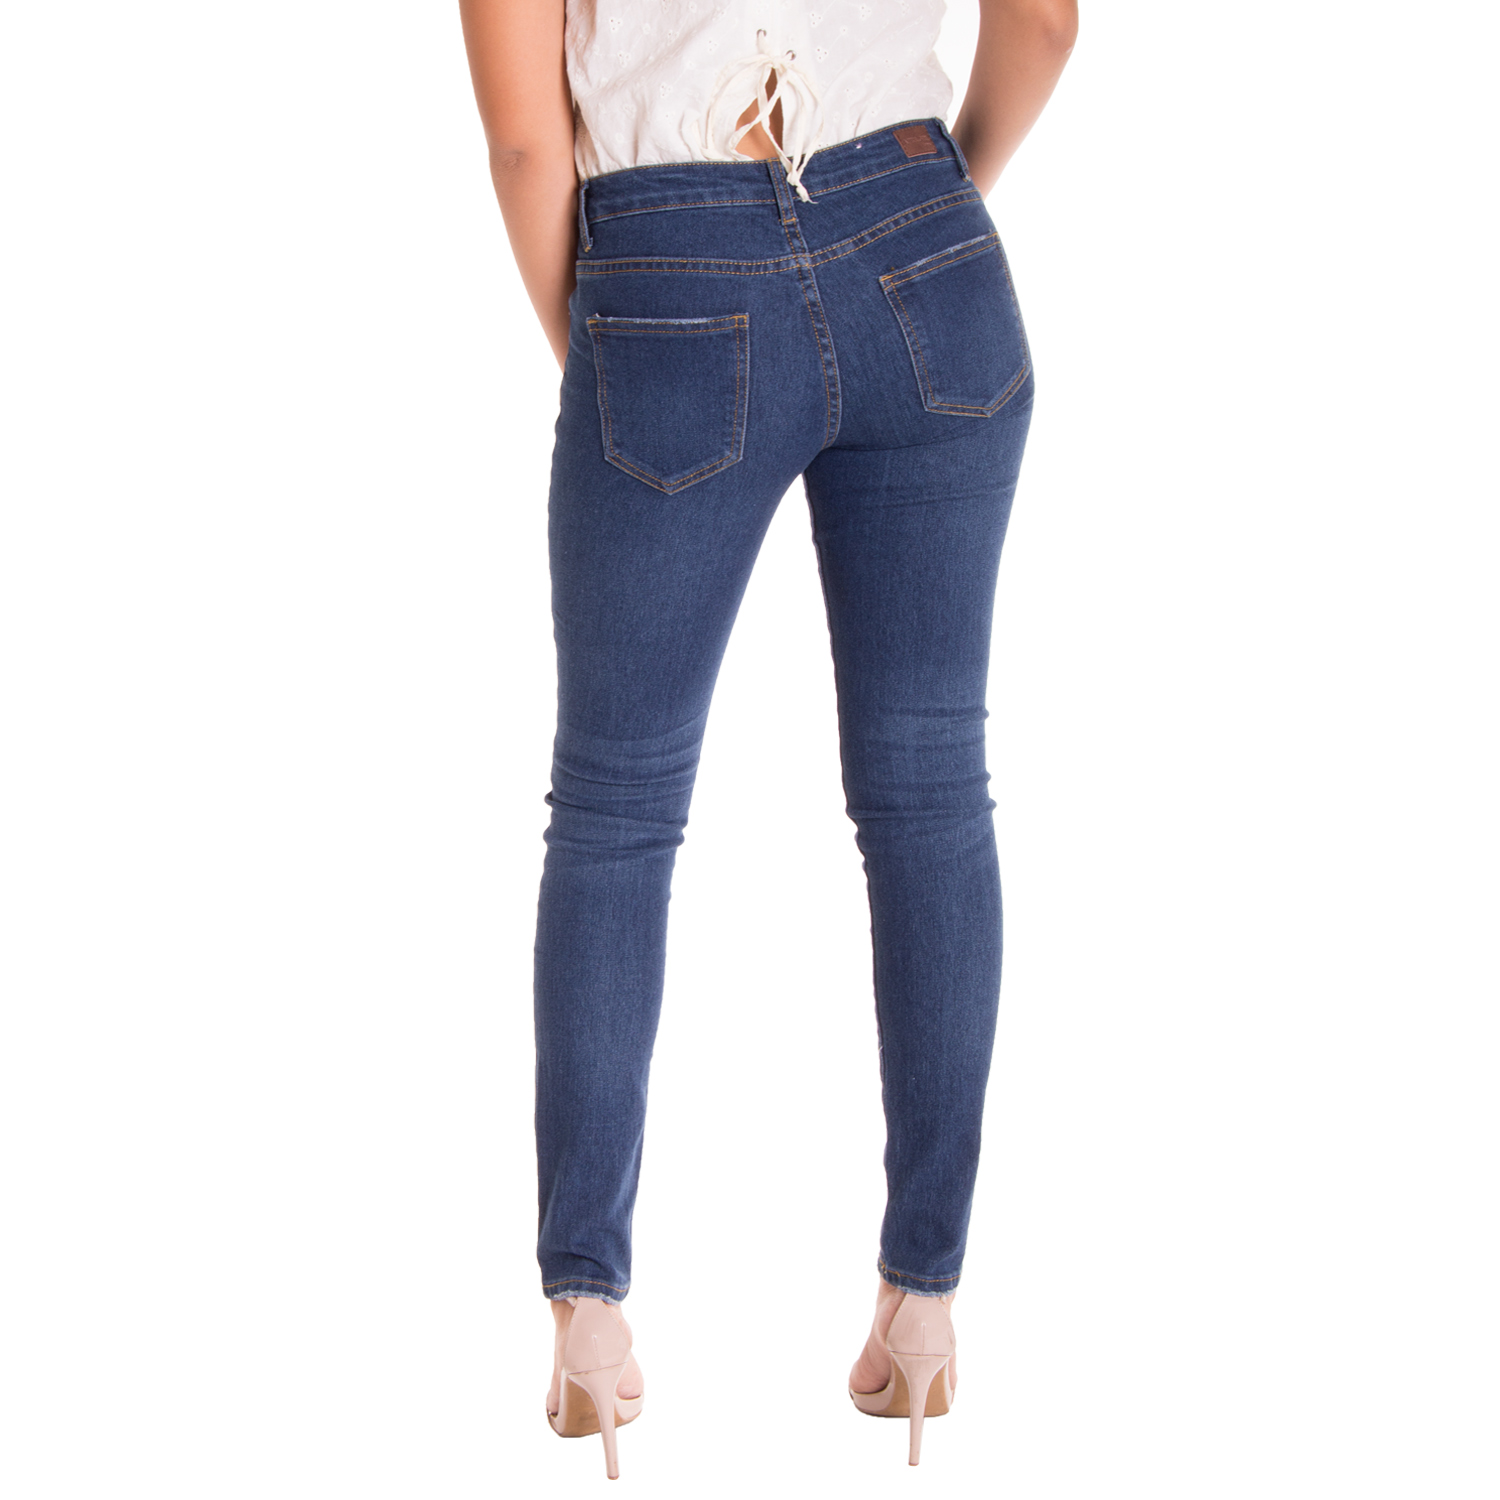 Jeans & Denim: Free Shipping on orders over $45 at northtercessbudh.cf - Your Online Jeans & Denim Store! Overstock uses cookies to ensure you get the best experience on our site. If you continue on our site, you consent to the use of such cookies. Women Lady High Waist Slim Jeans Skinny pants Slim Denim Trousers Jeans Blue. 21 Reviews.